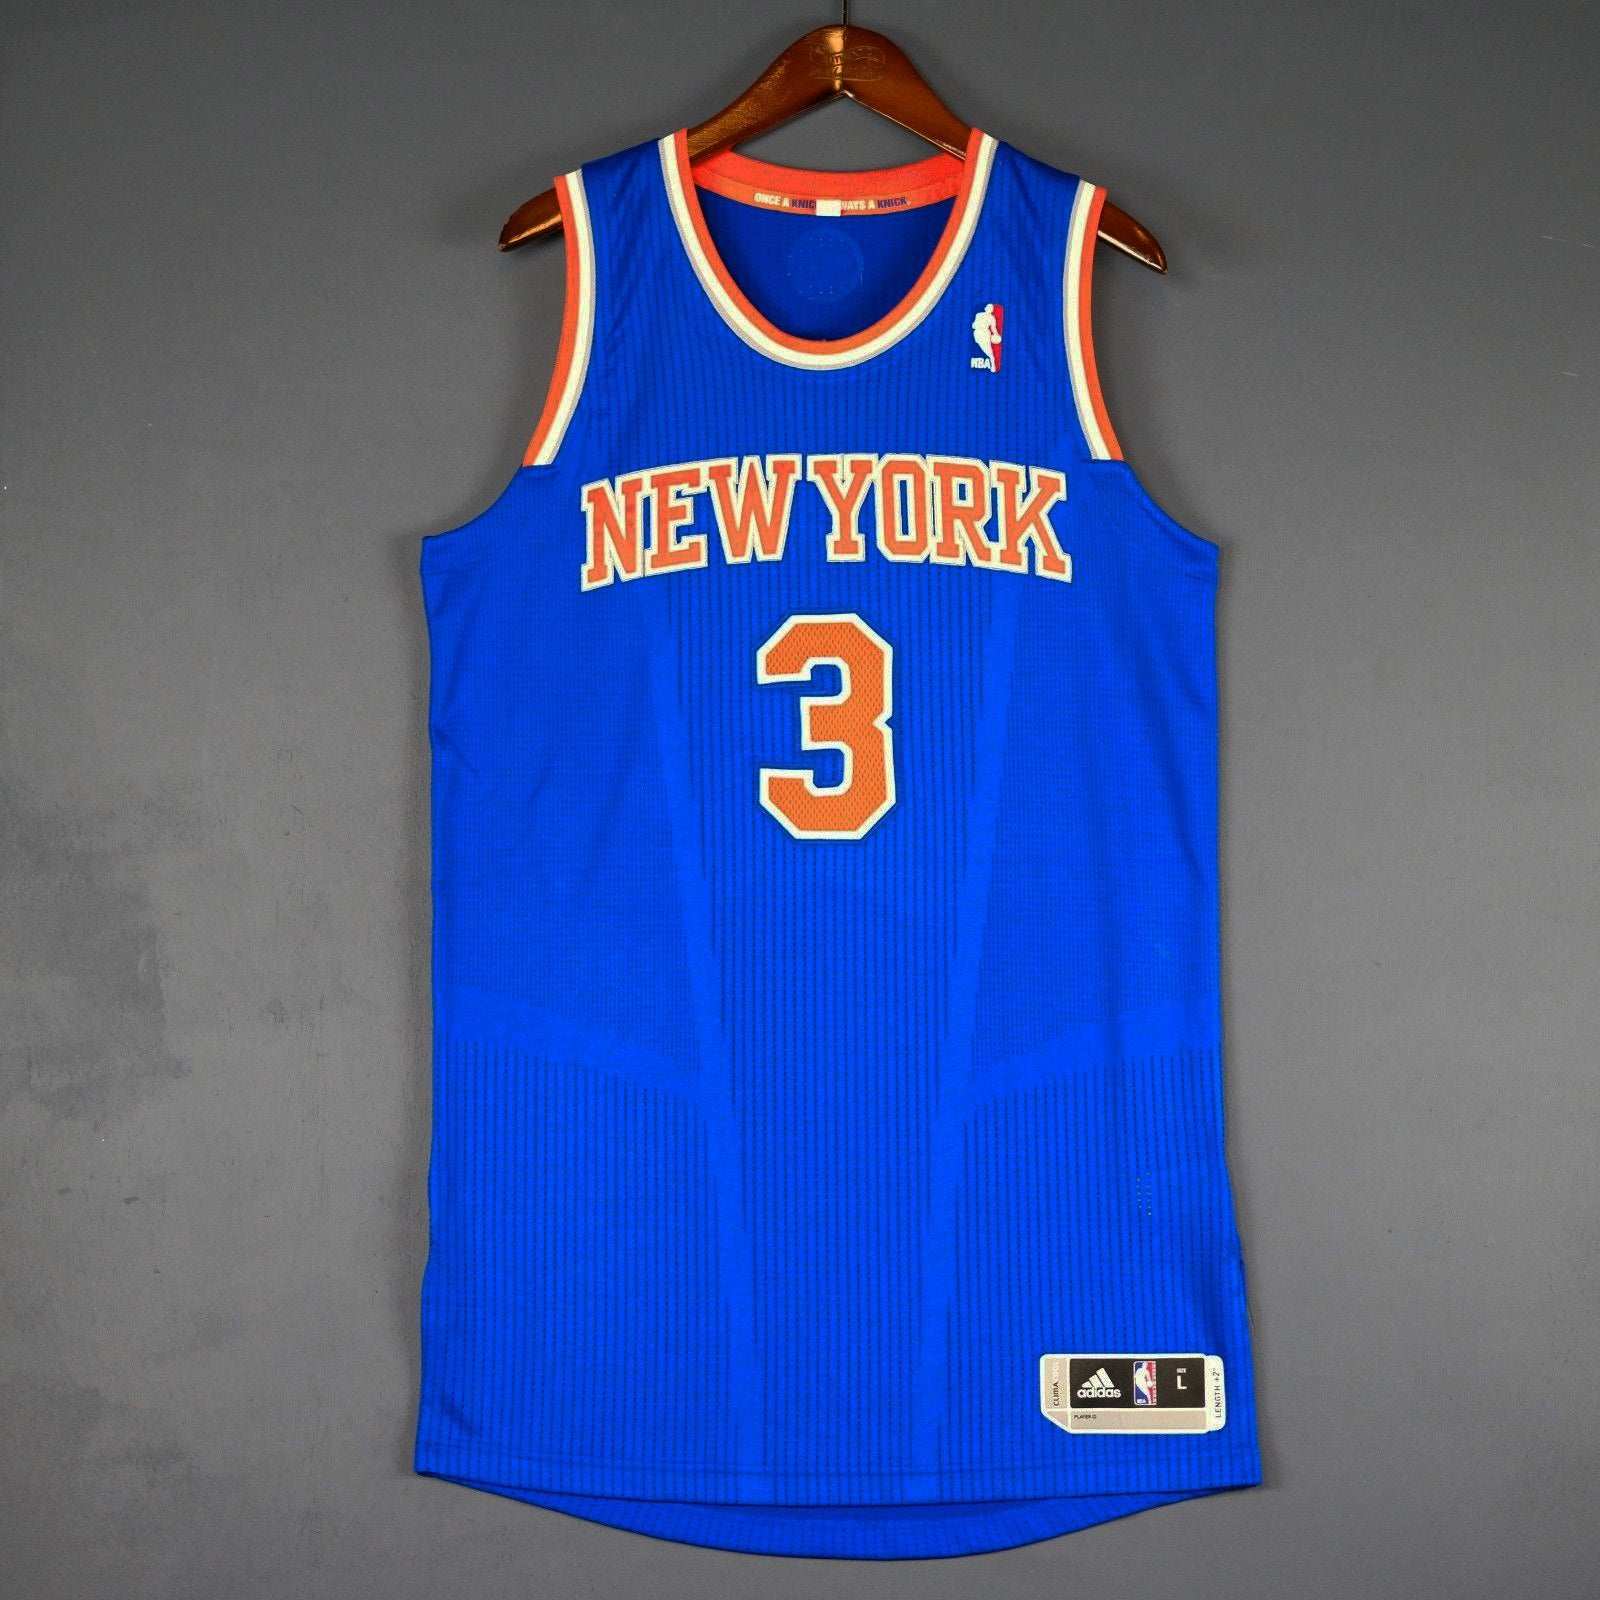 030c6e181 ... store john starks new york knicks adidas revolution 30 authentic jersey.  john starks new york